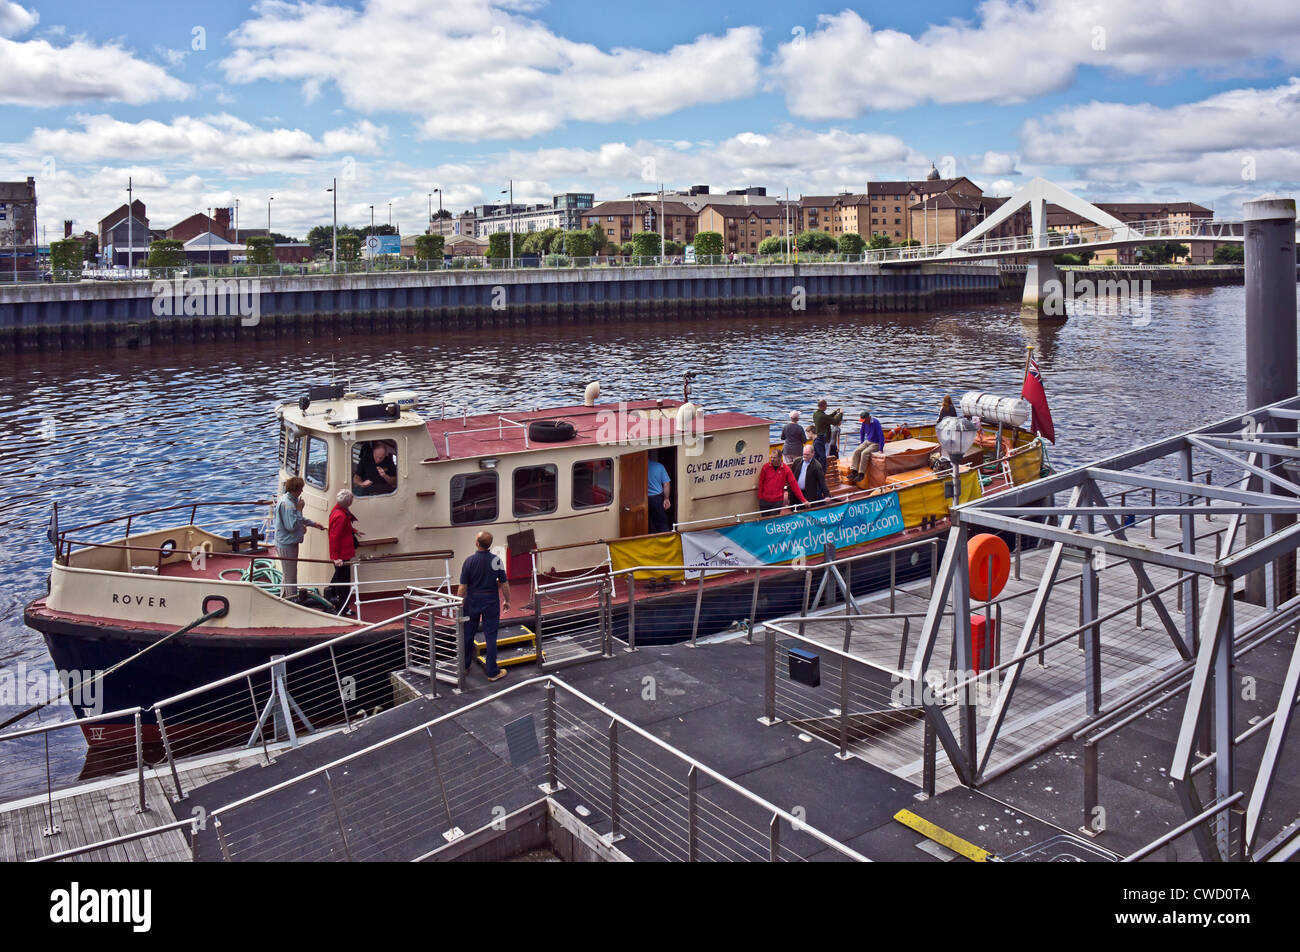 Clyde Marine Ltd. vessel Rover discharging passengers at the Broomielaw pontoon on the River Clyde in central Glasgow - Stock Image